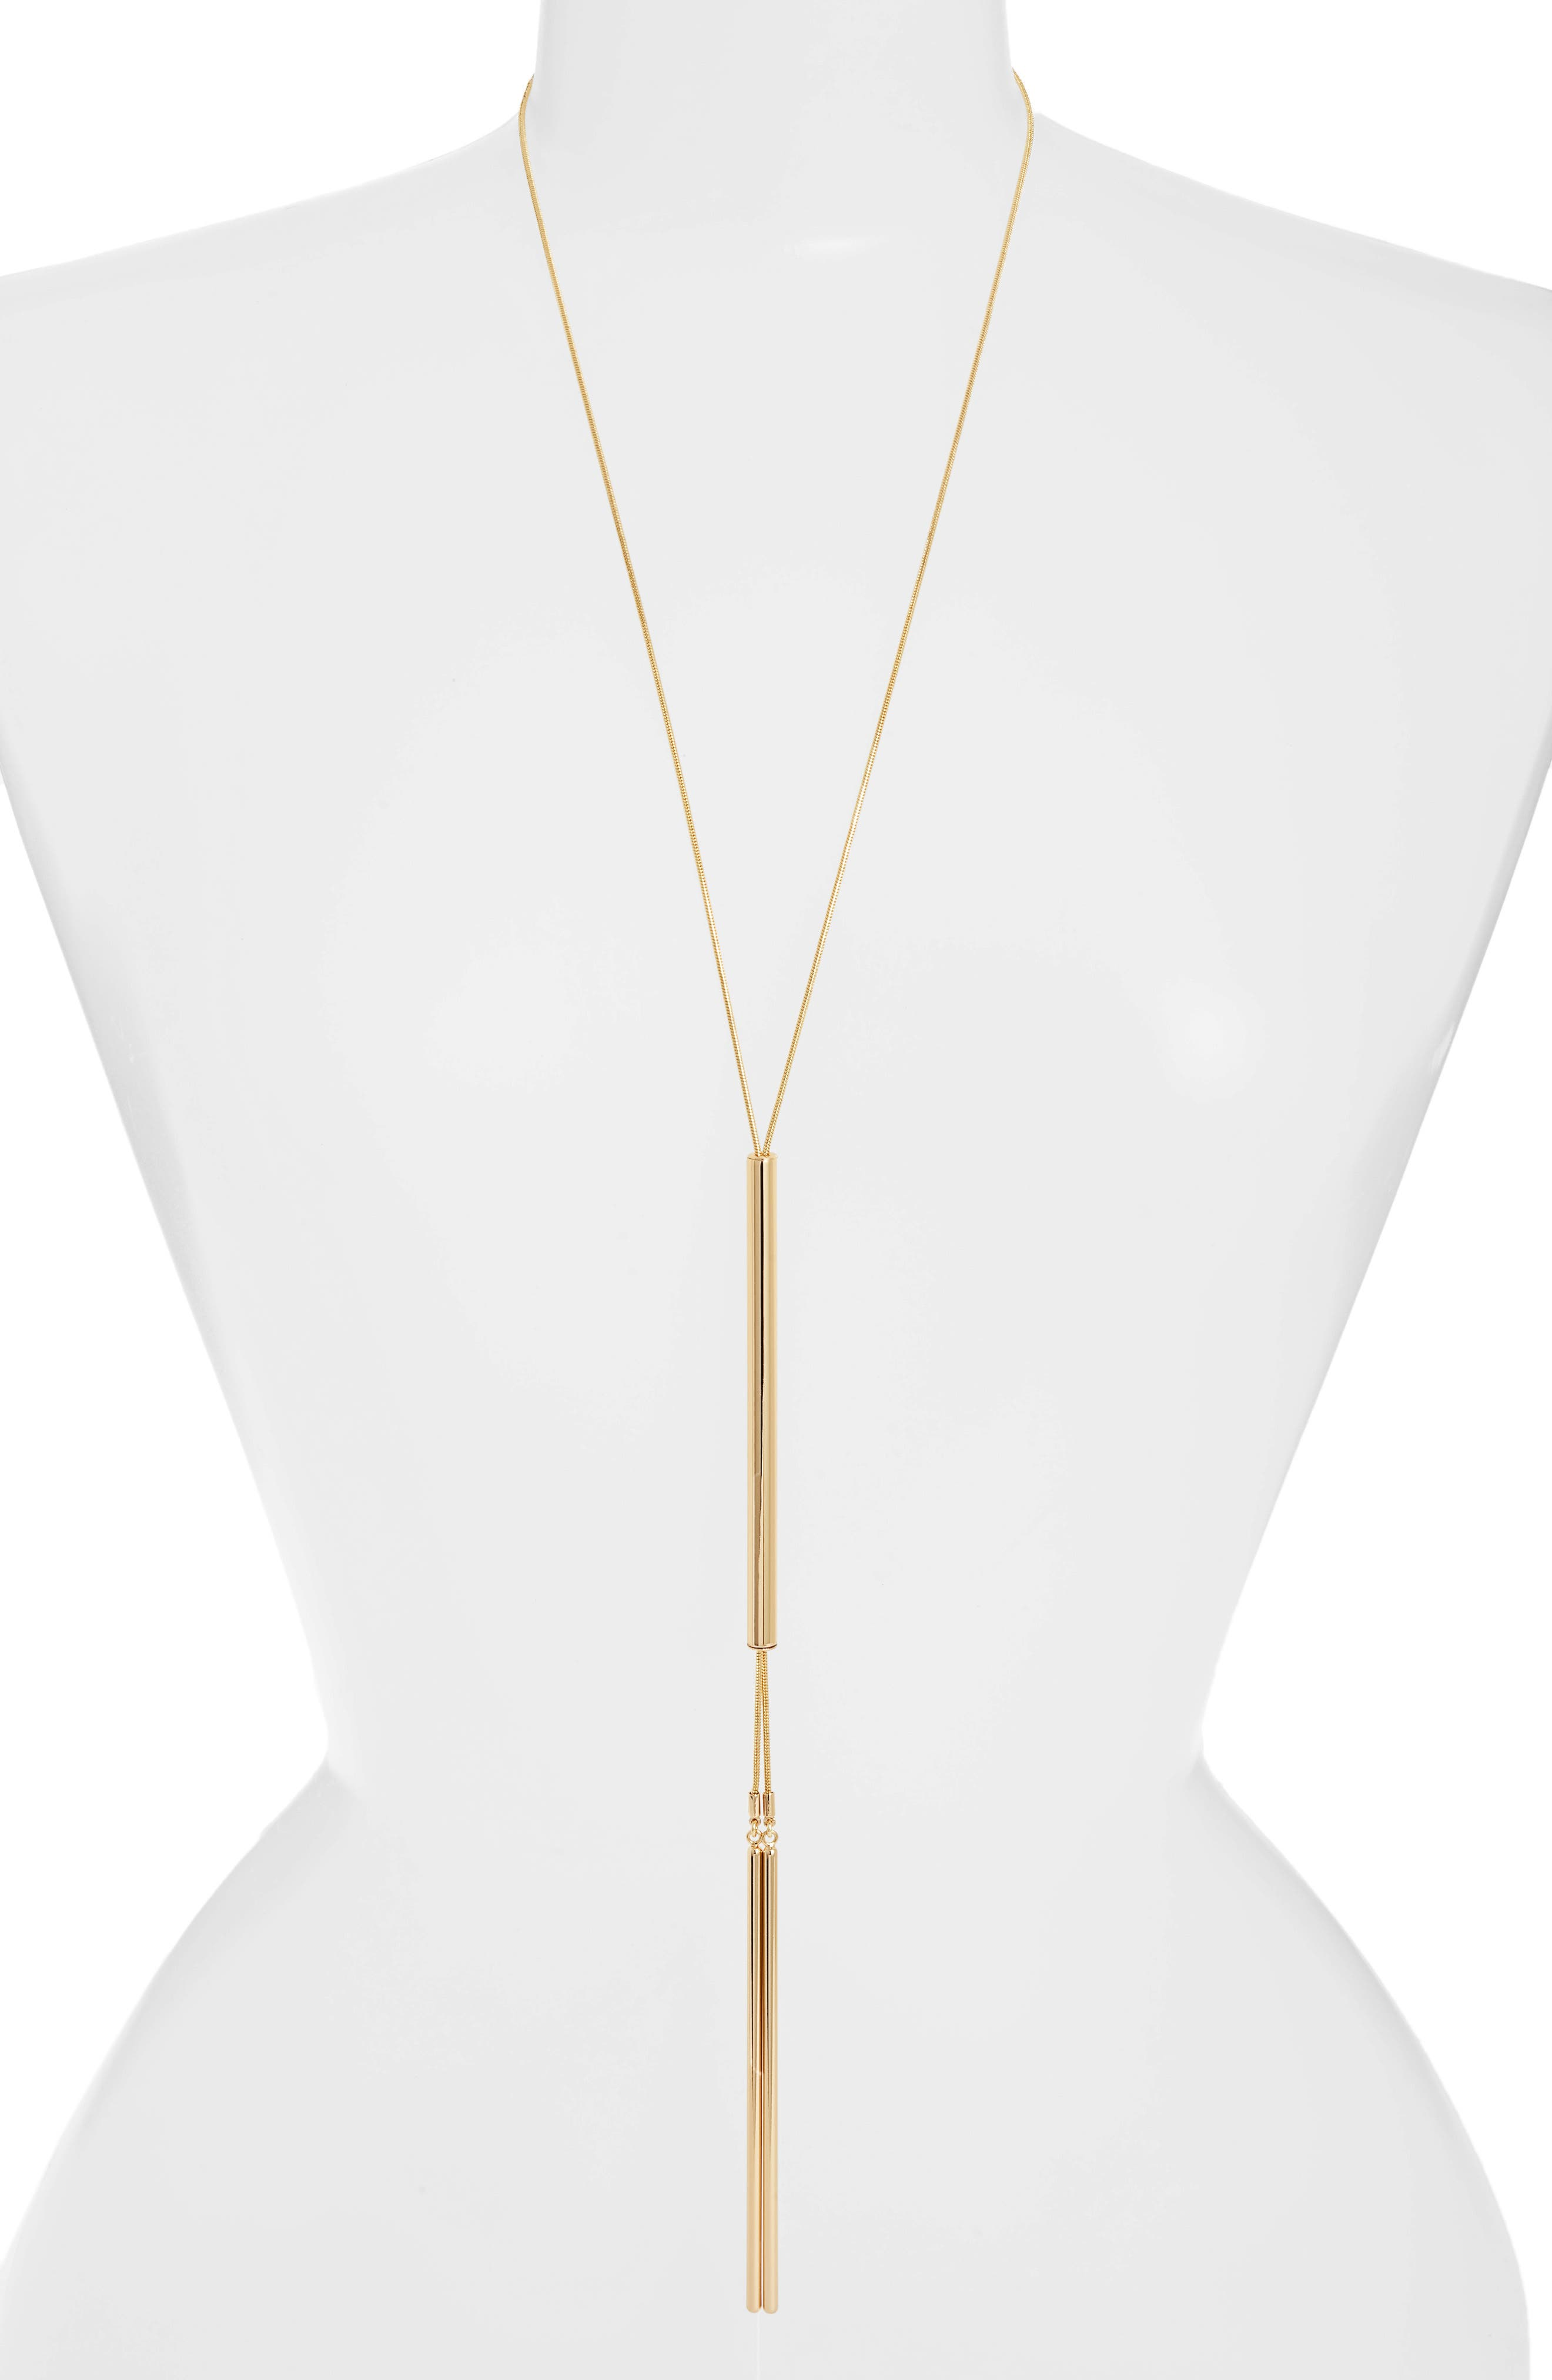 Forme Lariat Necklace,                             Main thumbnail 1, color,                             HIGH POLISH GOLD